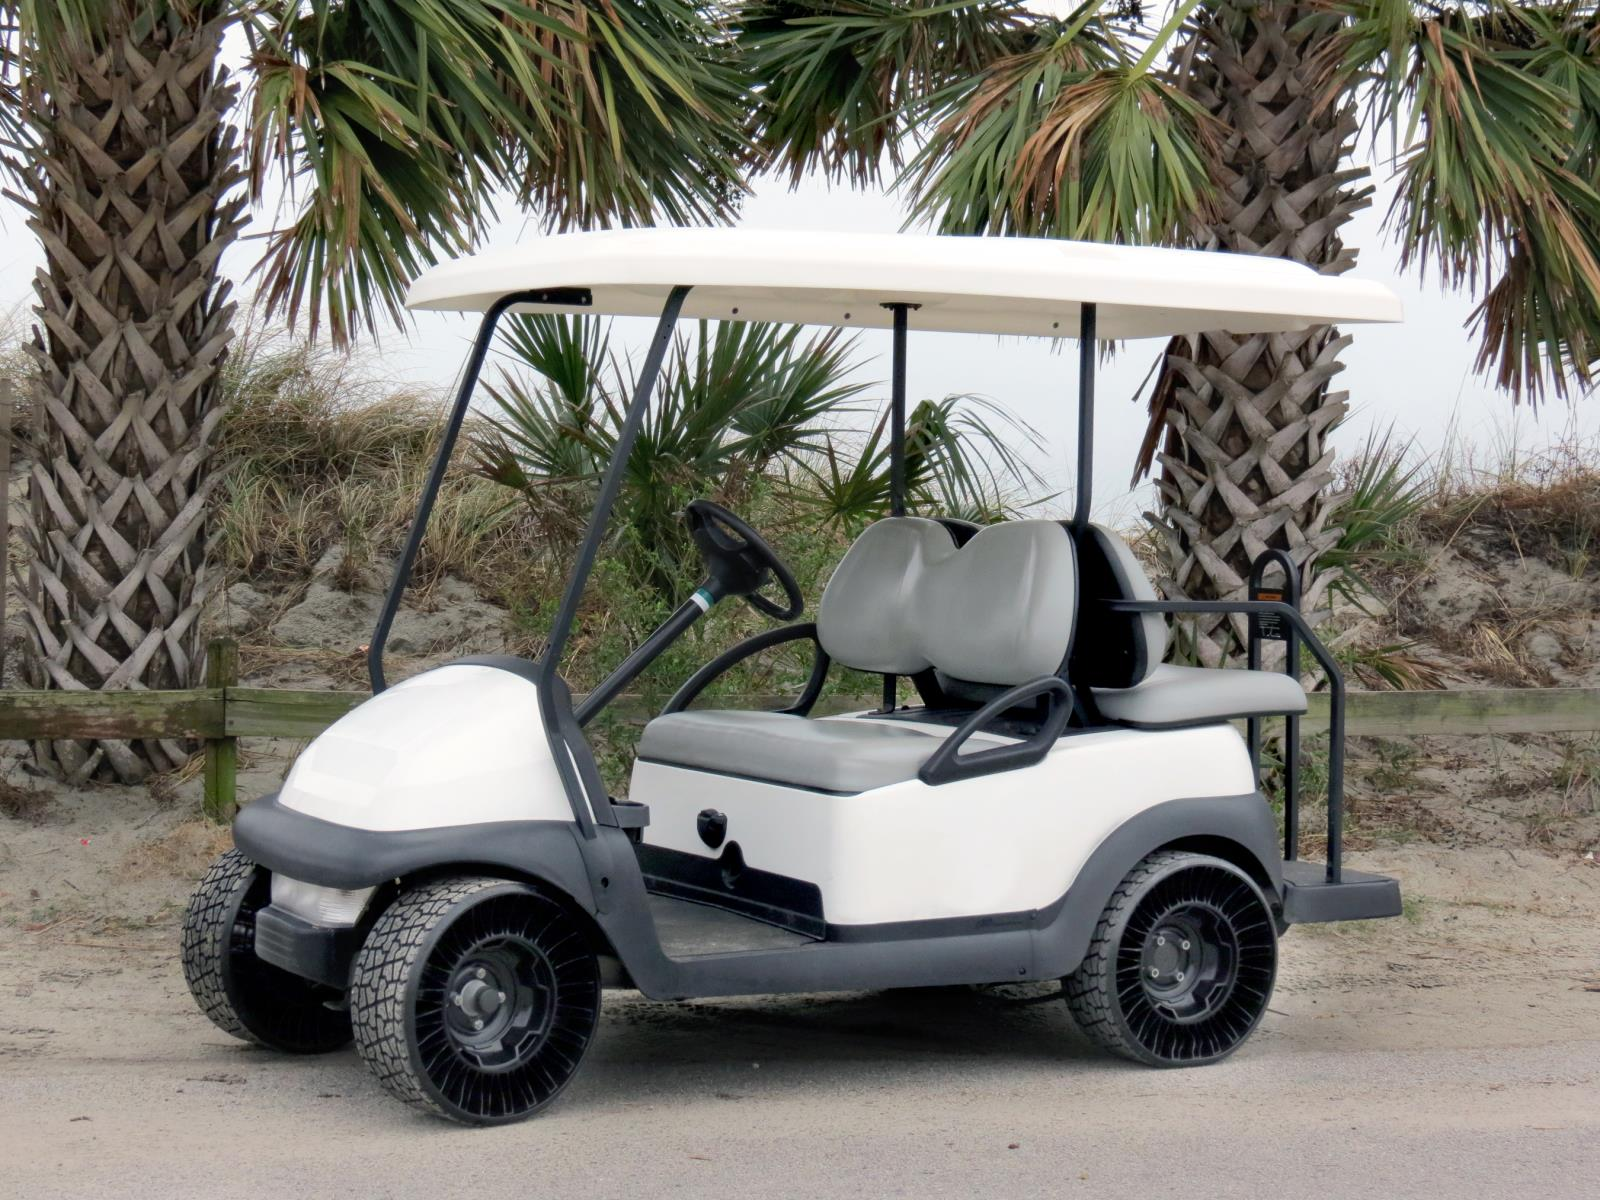 Turf and Golf Cart Tires & Machine Market : Global Outlook and ...